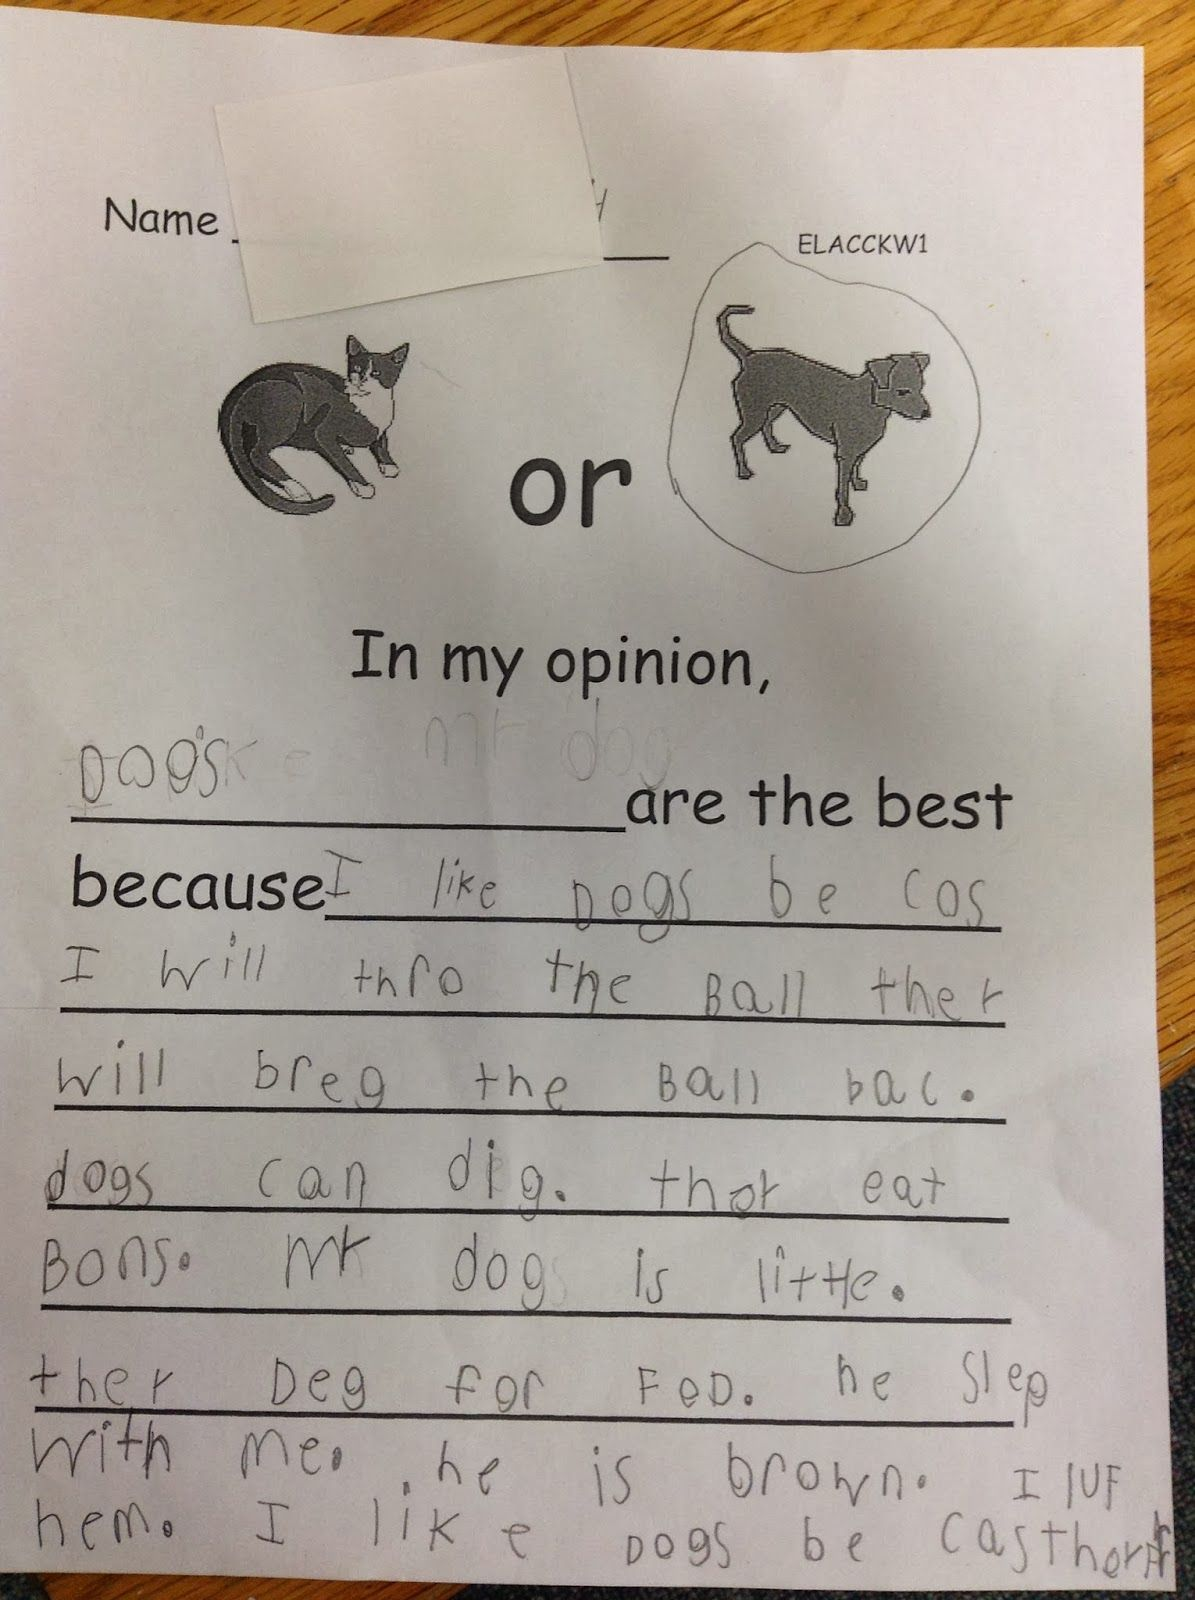 opinion writing in kindergarten  dr  clements u0026 39  kindergarten  student opinion writing samples